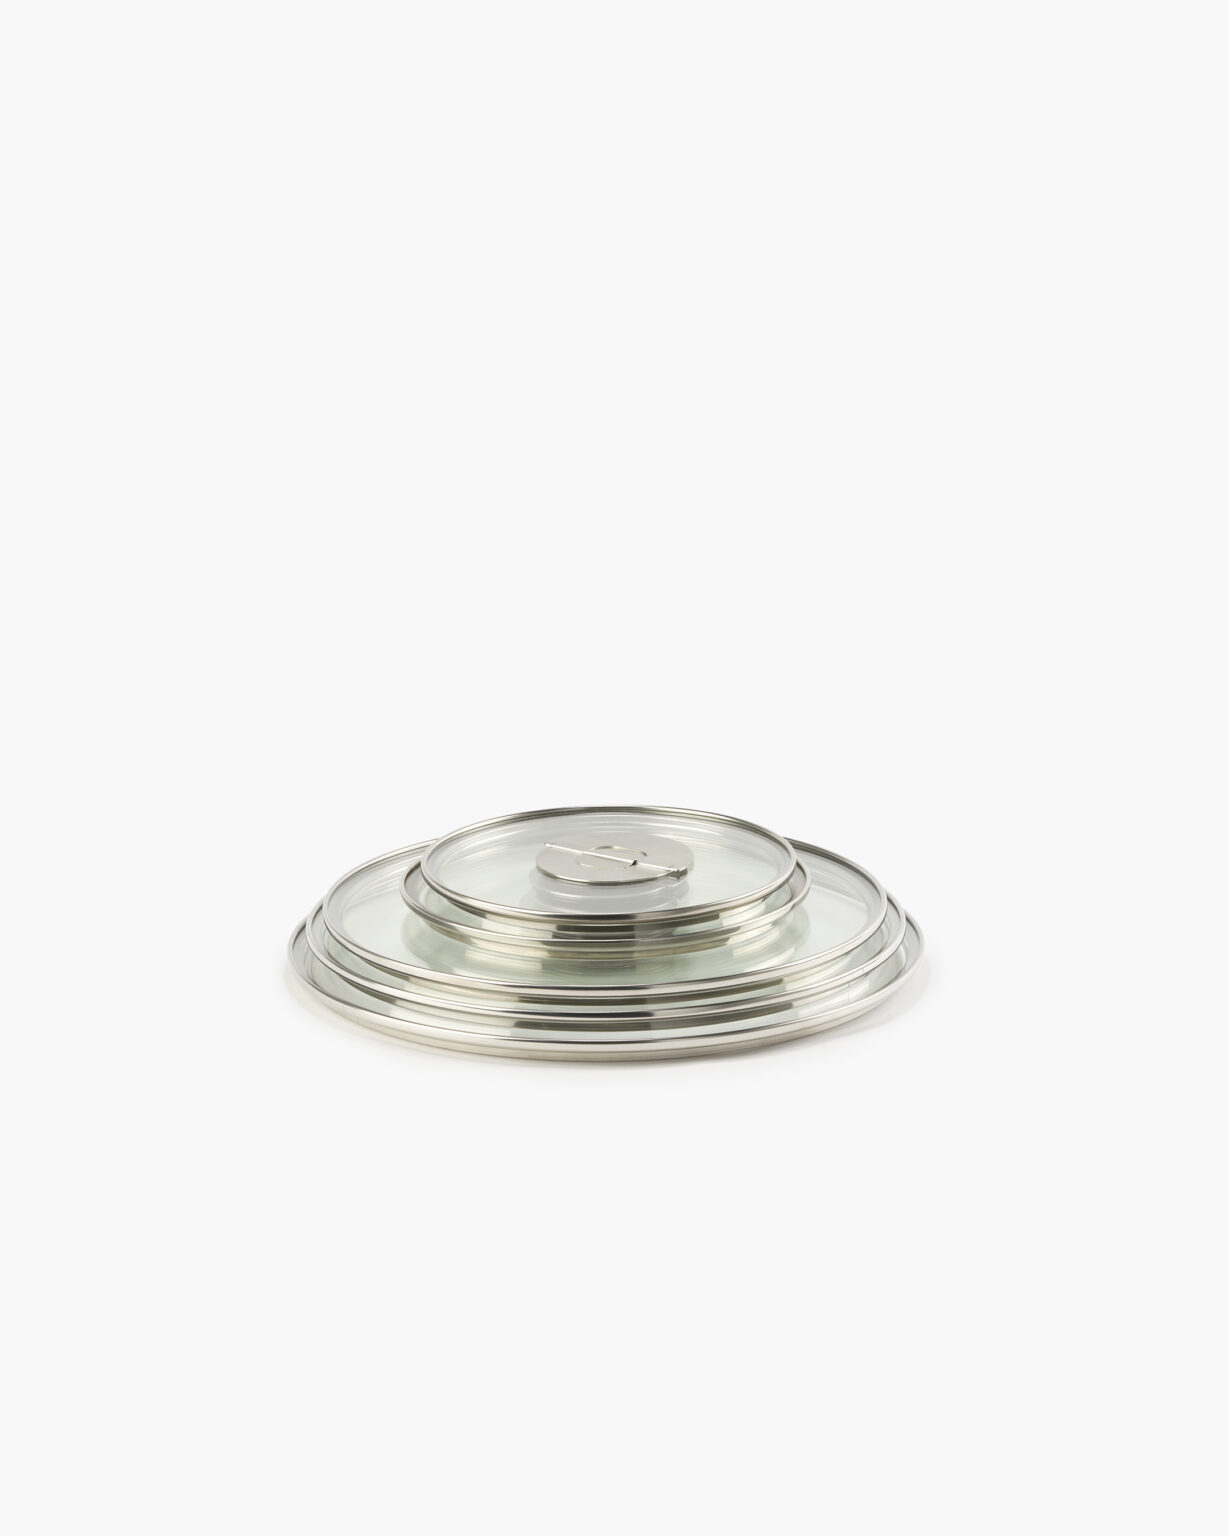 ENSEMBL Stackware Full6 Stainless Steel Fully Clad Cookware Flat Lying Lids